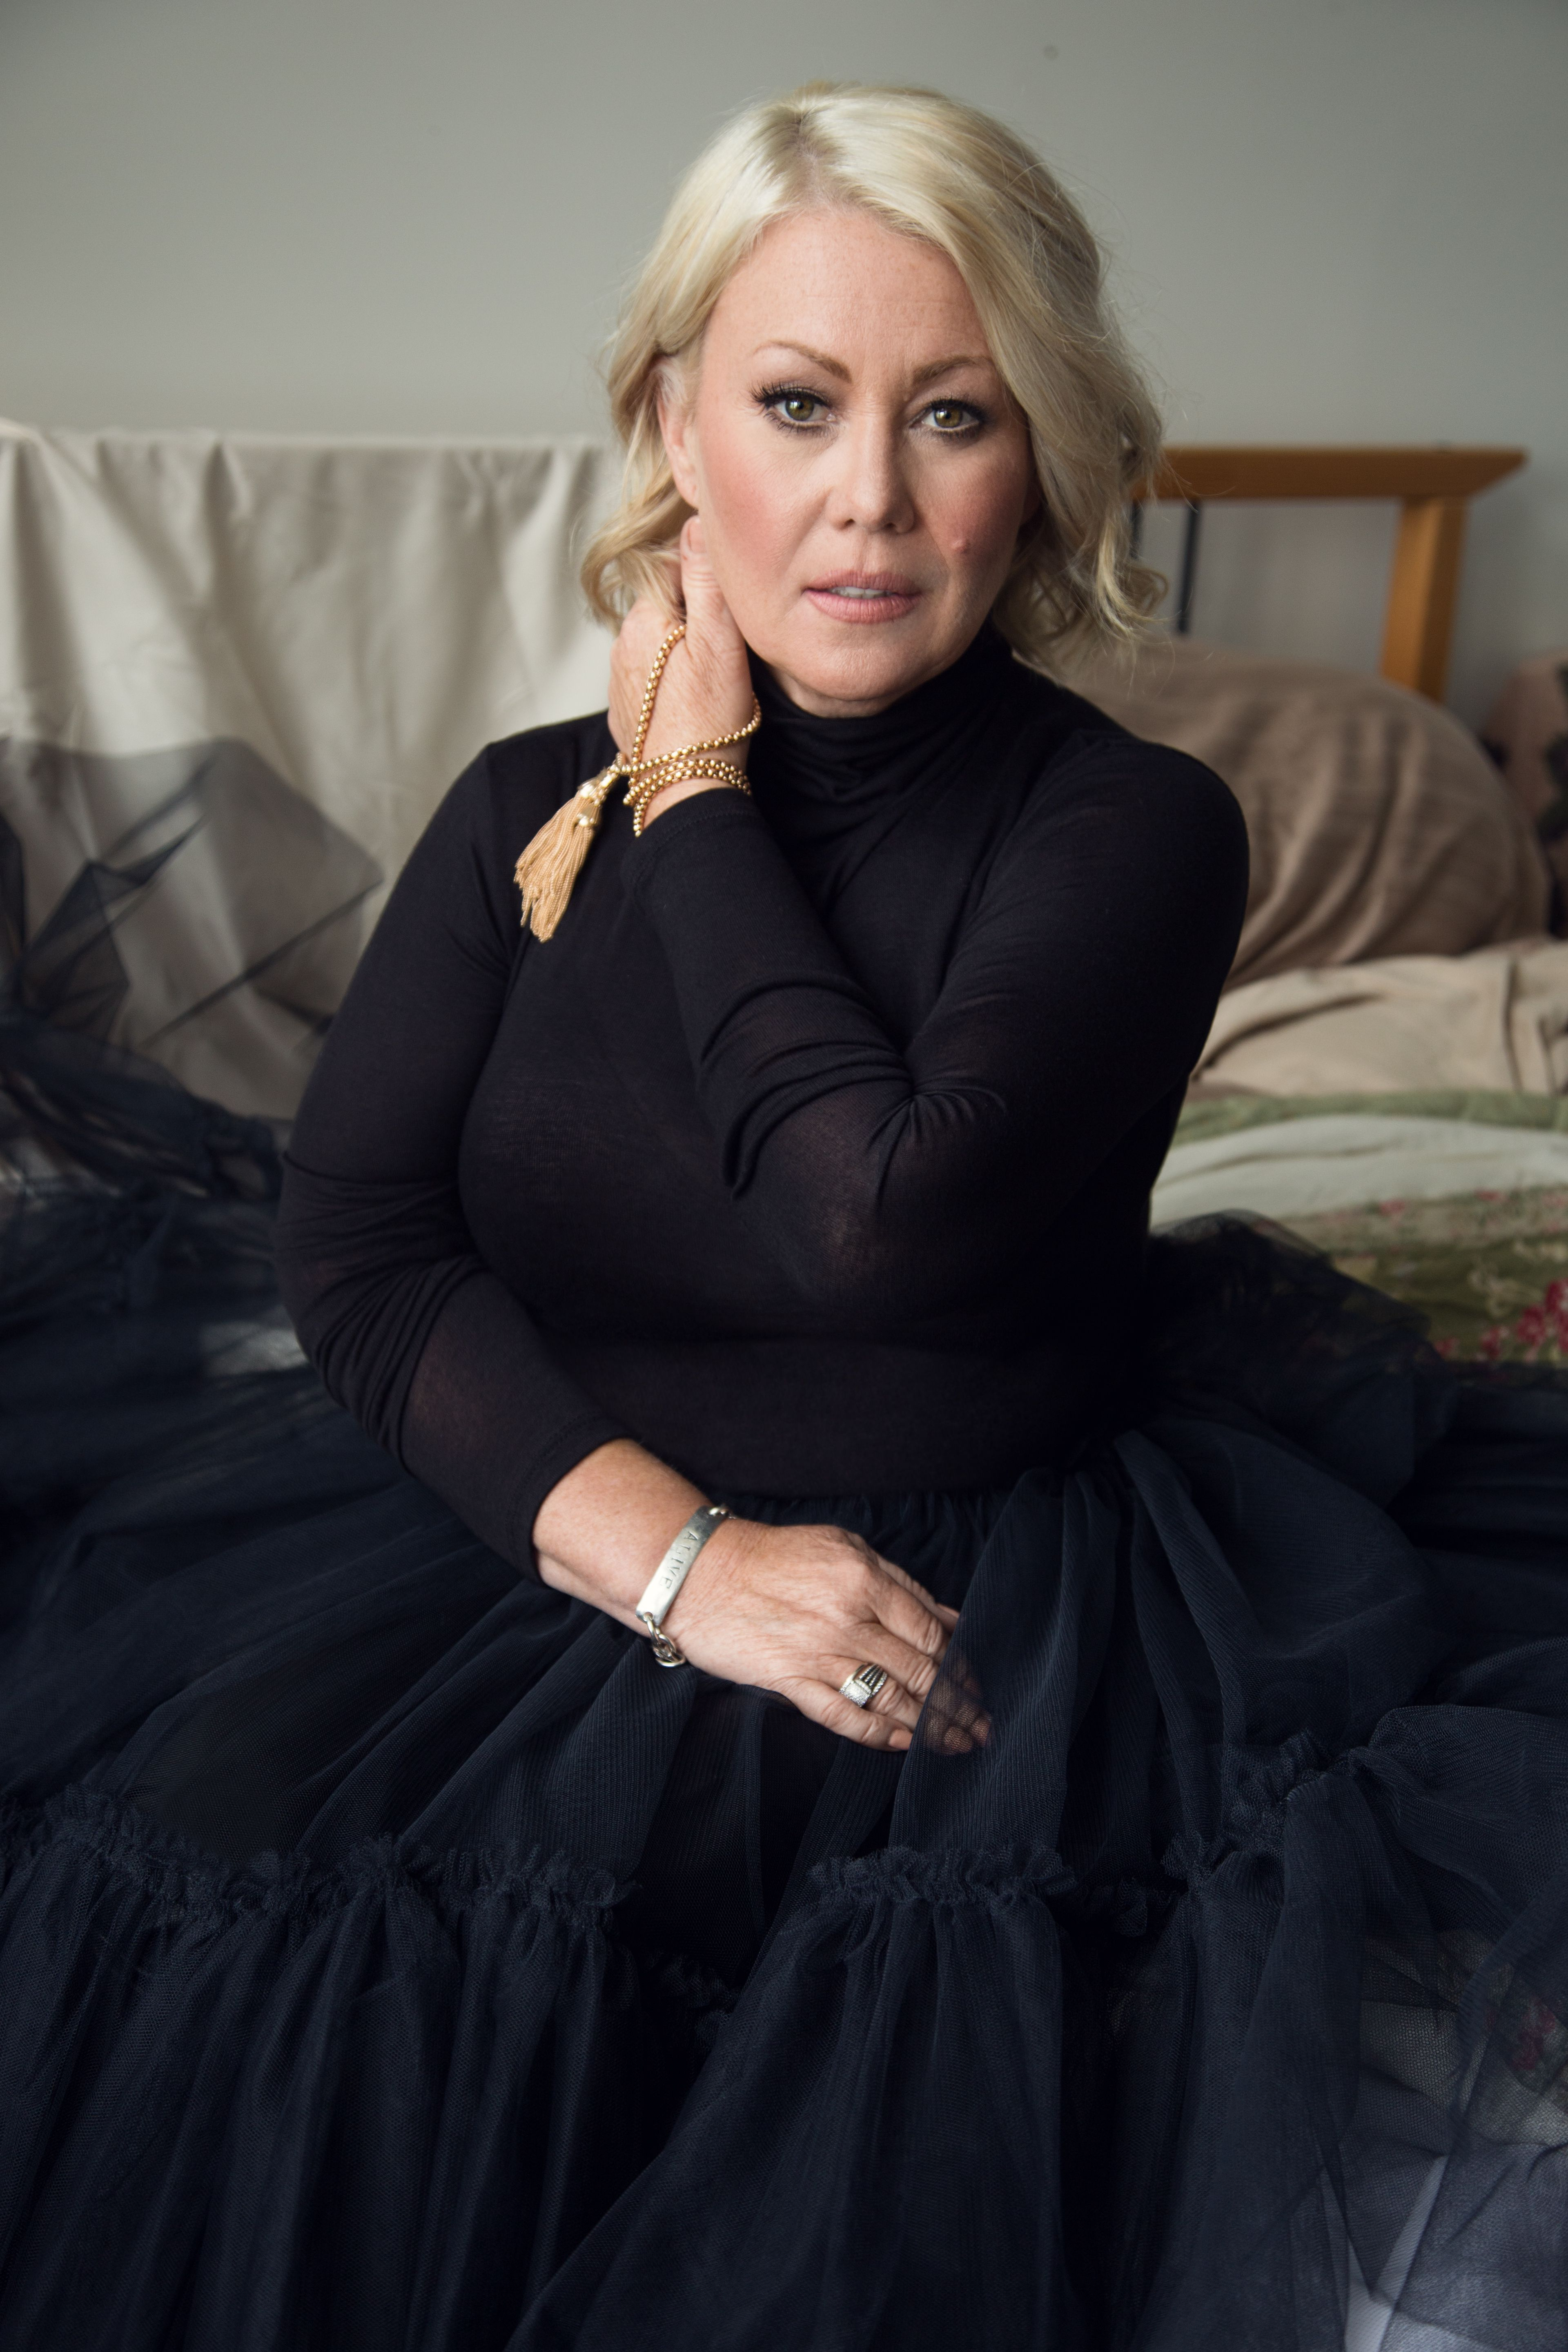 e9d52adcfc5 The lovingly insensitive Jann Arden - The Globe and Mail